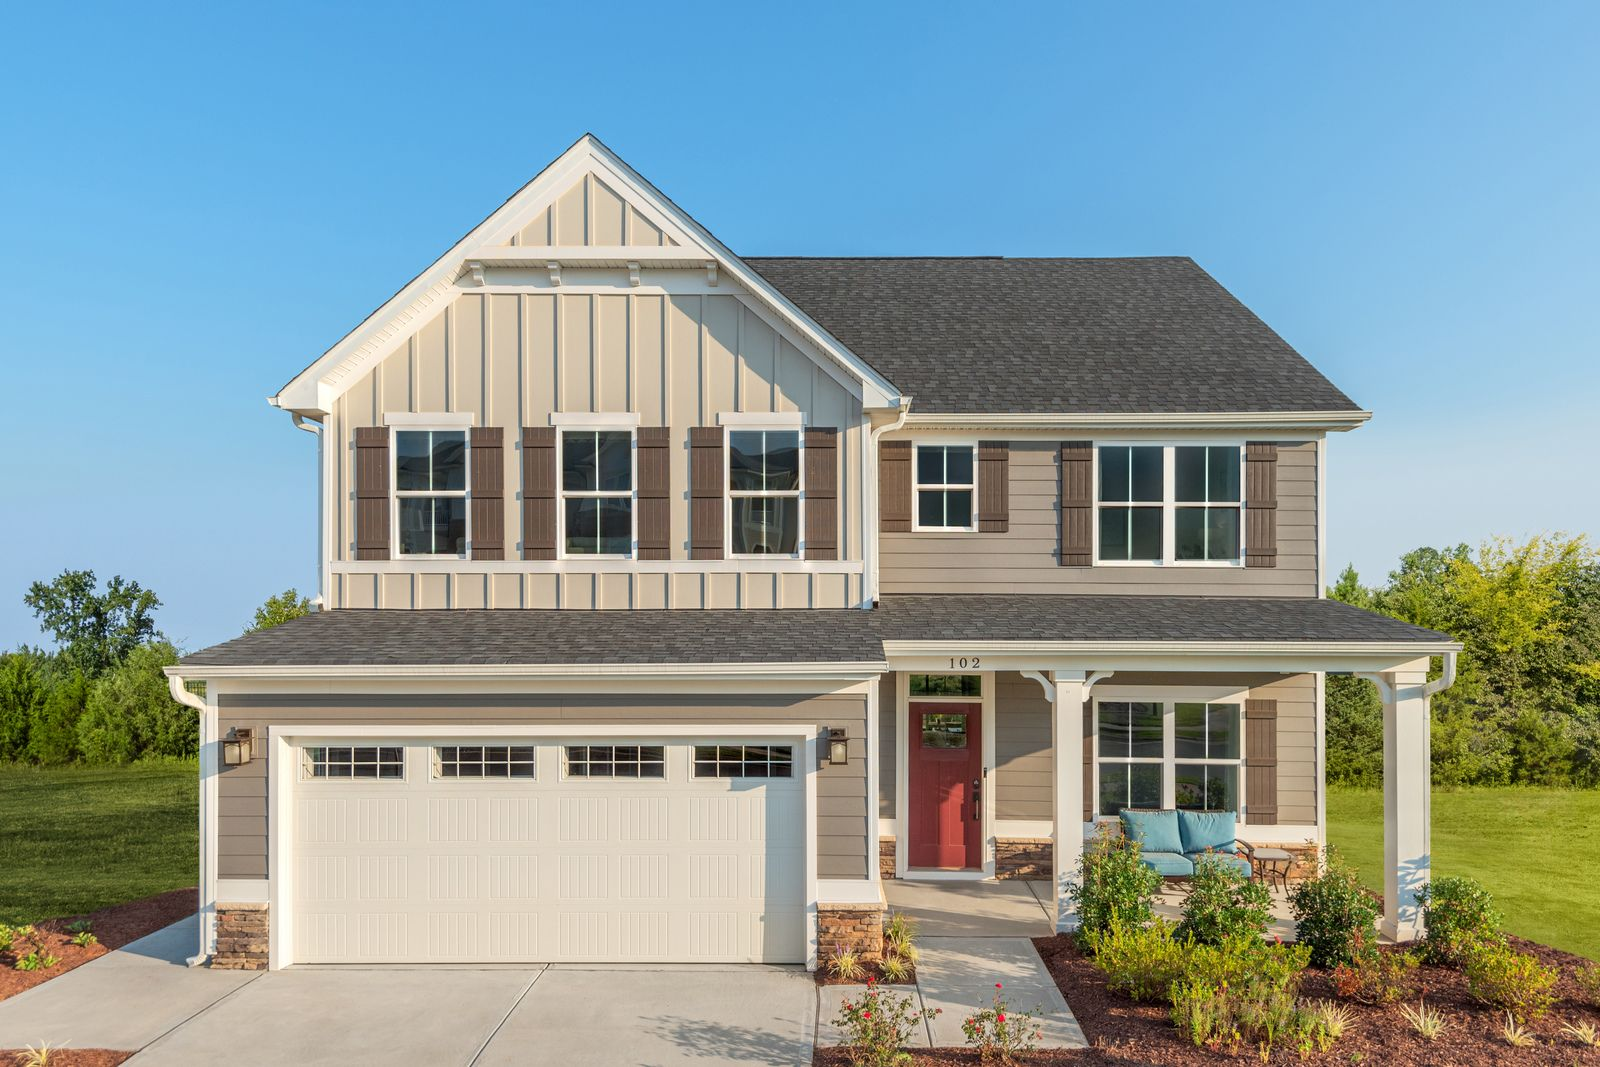 FREEDOM POINT, COMING SOON TO NORTH STAFFORD FROM THE LOW $500S!:Freedom Point will feature brand new single-family homes tucked away into 2 cul-de-sacs in a convenient location near Quantico, I-95, Garrisonville shops & the VRE.Click here to Join the VIP List!